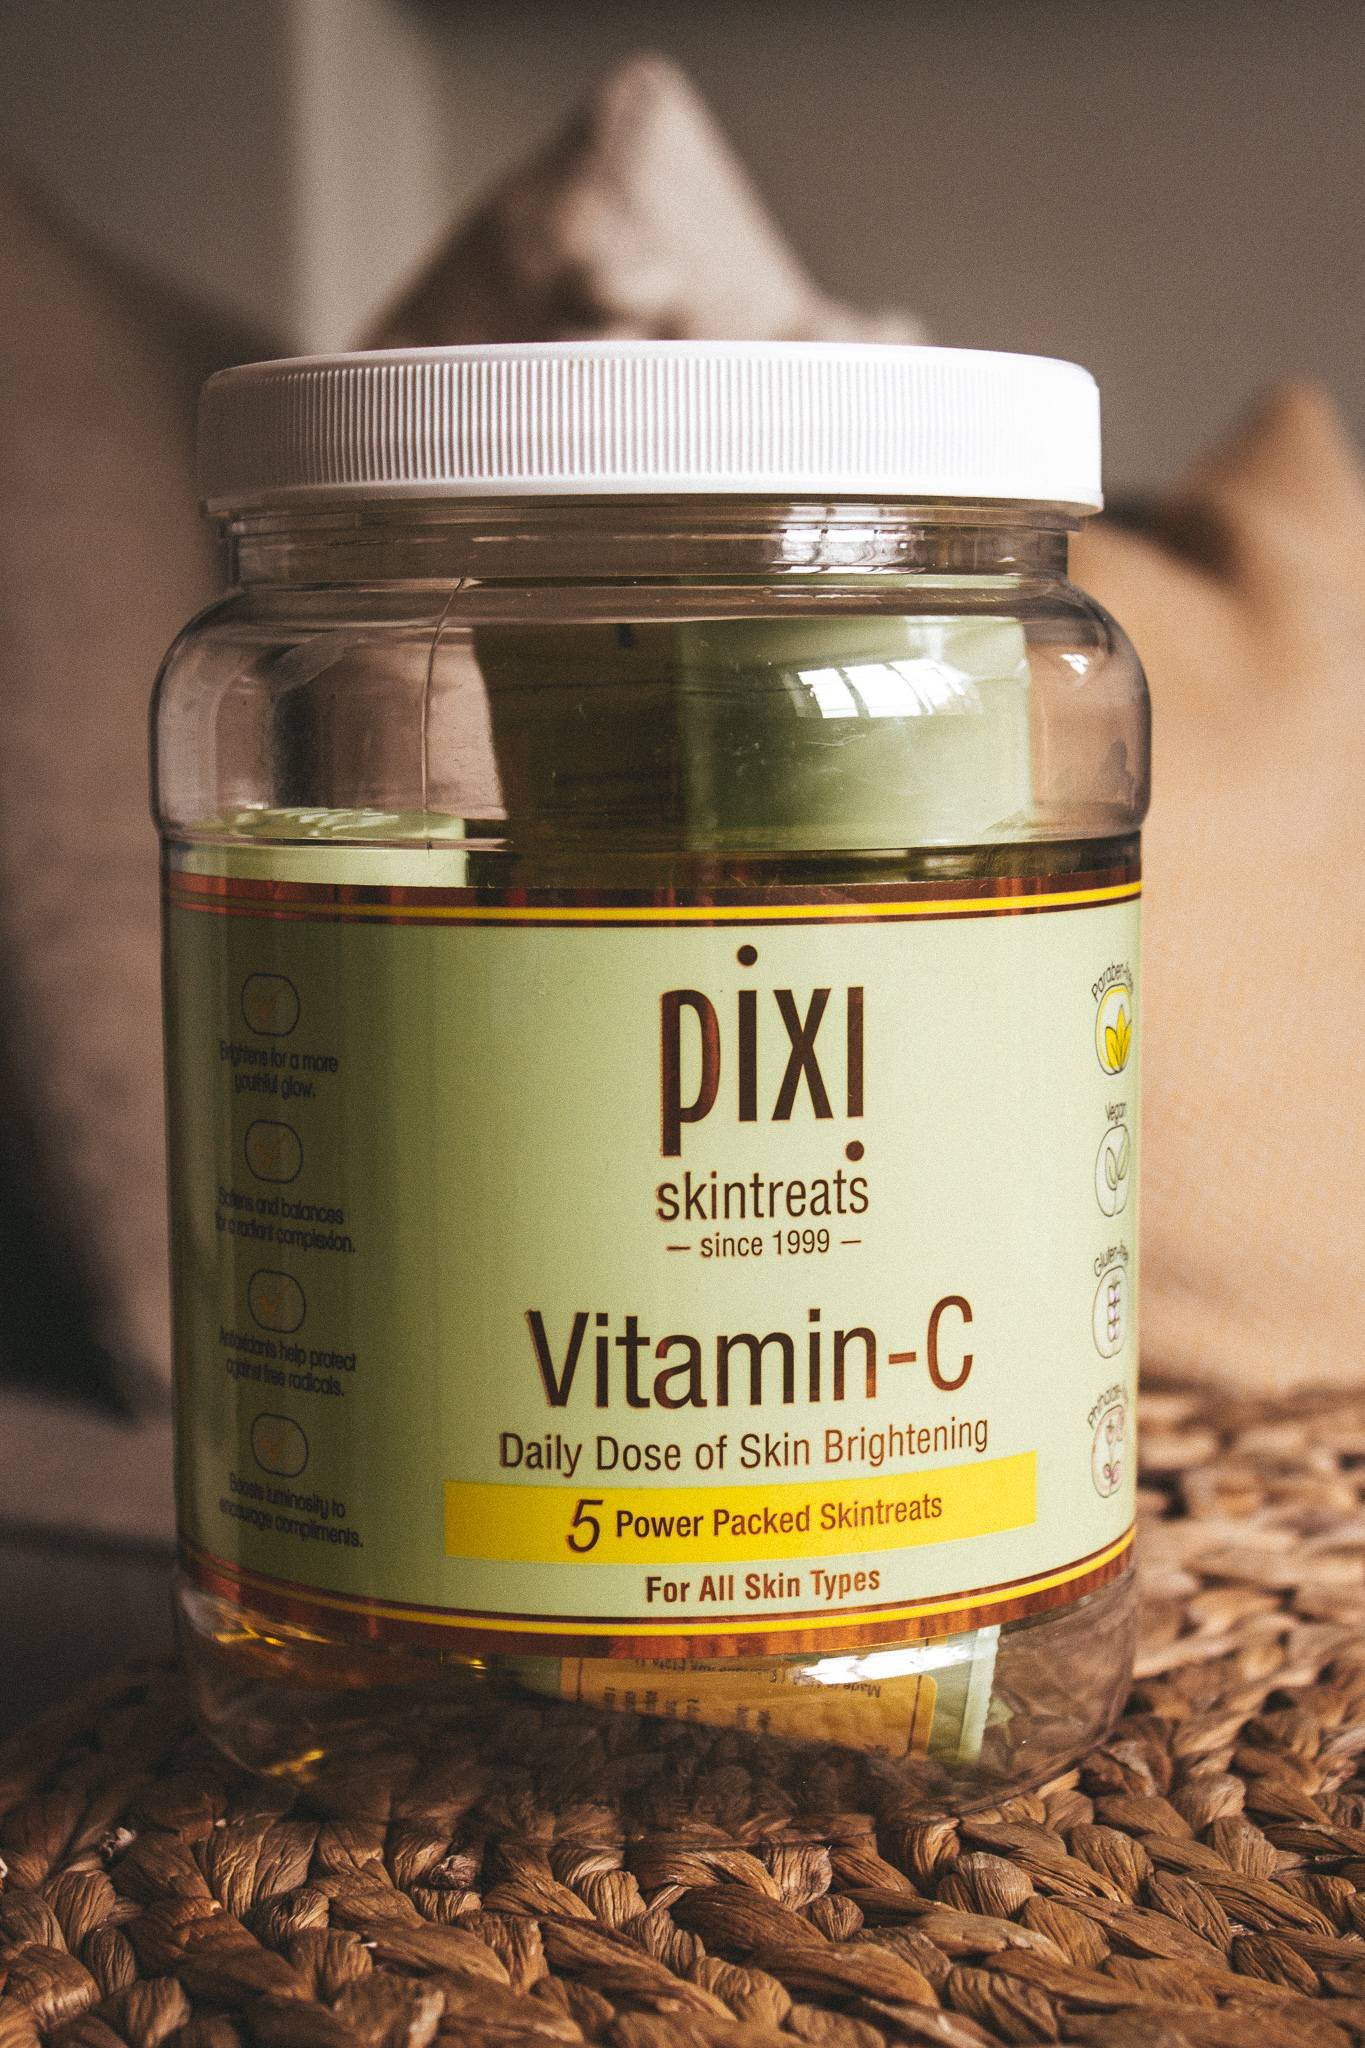 Pixi Vitamin C skin treats